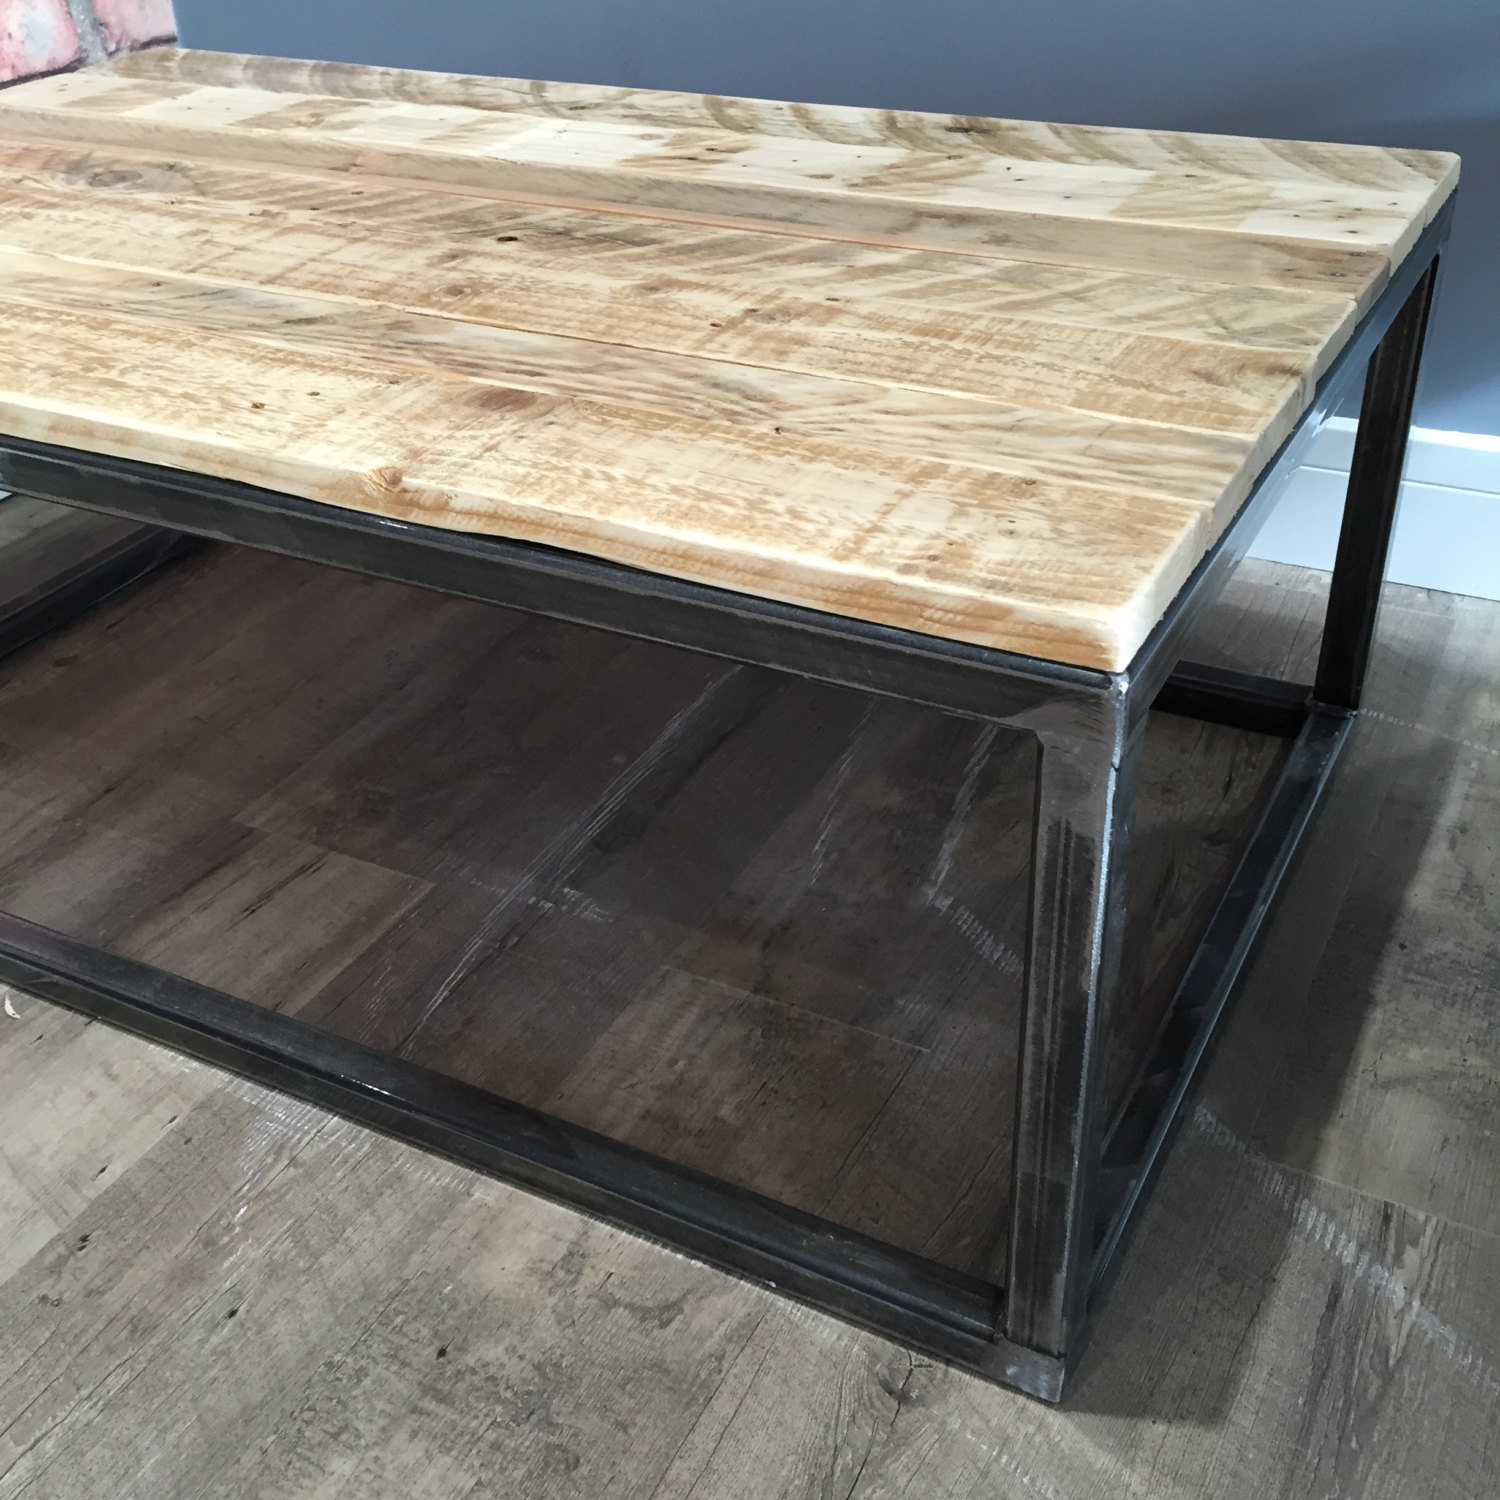 Repurposed pallet industrial coffee table